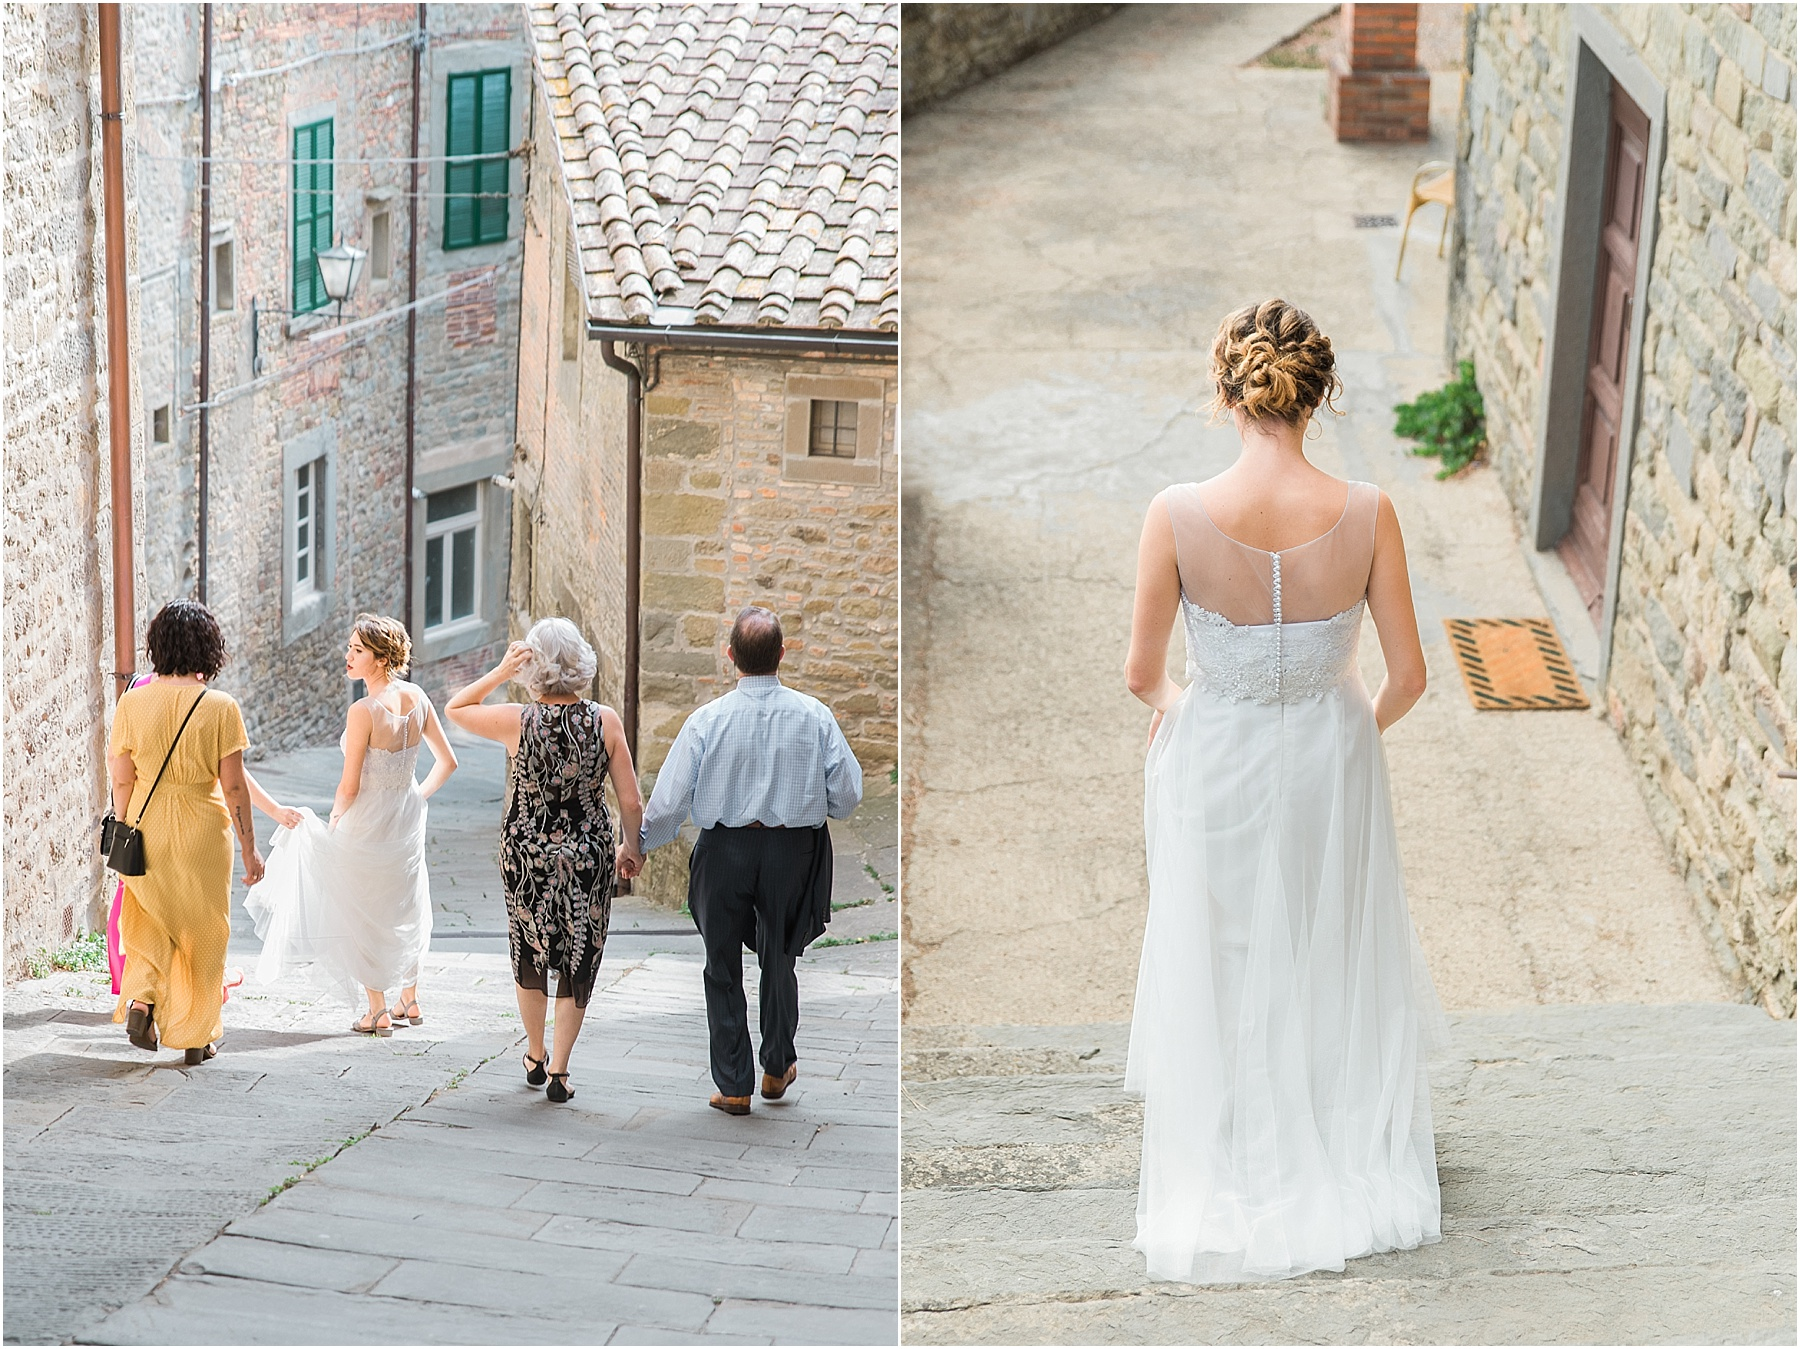 cortona wedding tuscan wedding arezzo destination wedding bride walking to the ceremony venue comune di cortona